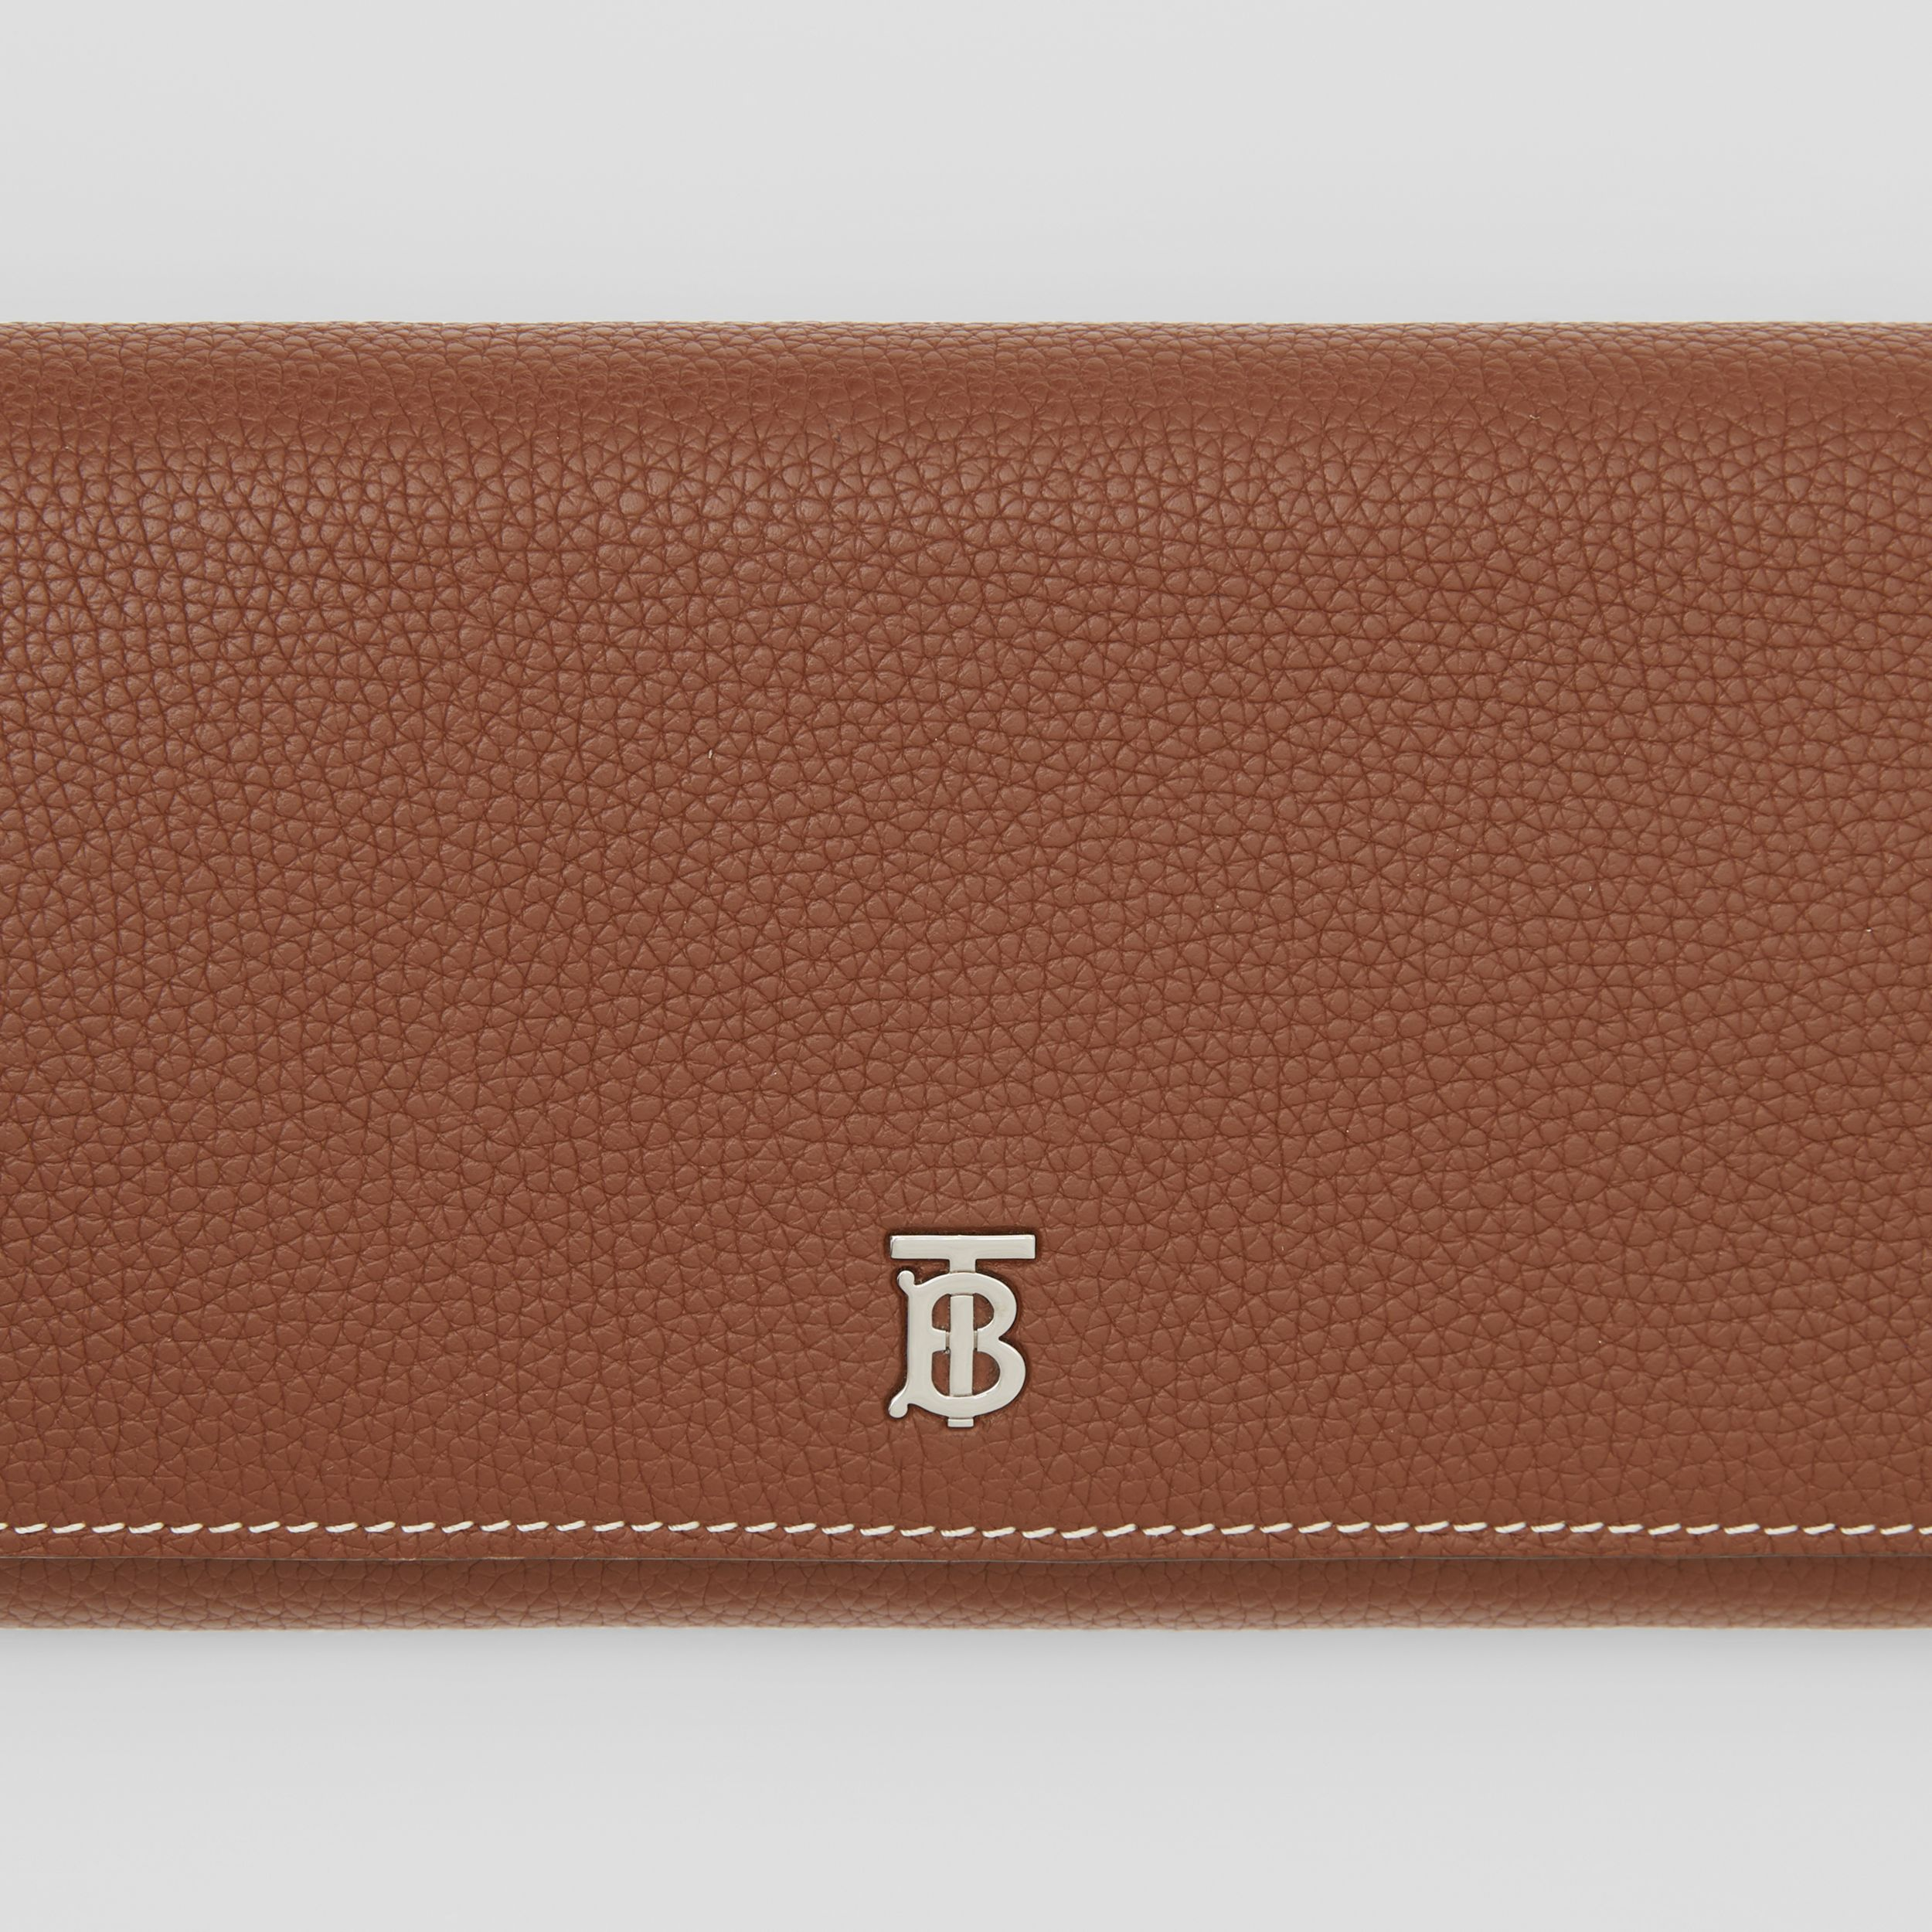 Grainy Leather Wallet with Detachable Strap in Tan | Burberry Hong Kong S.A.R. - 2